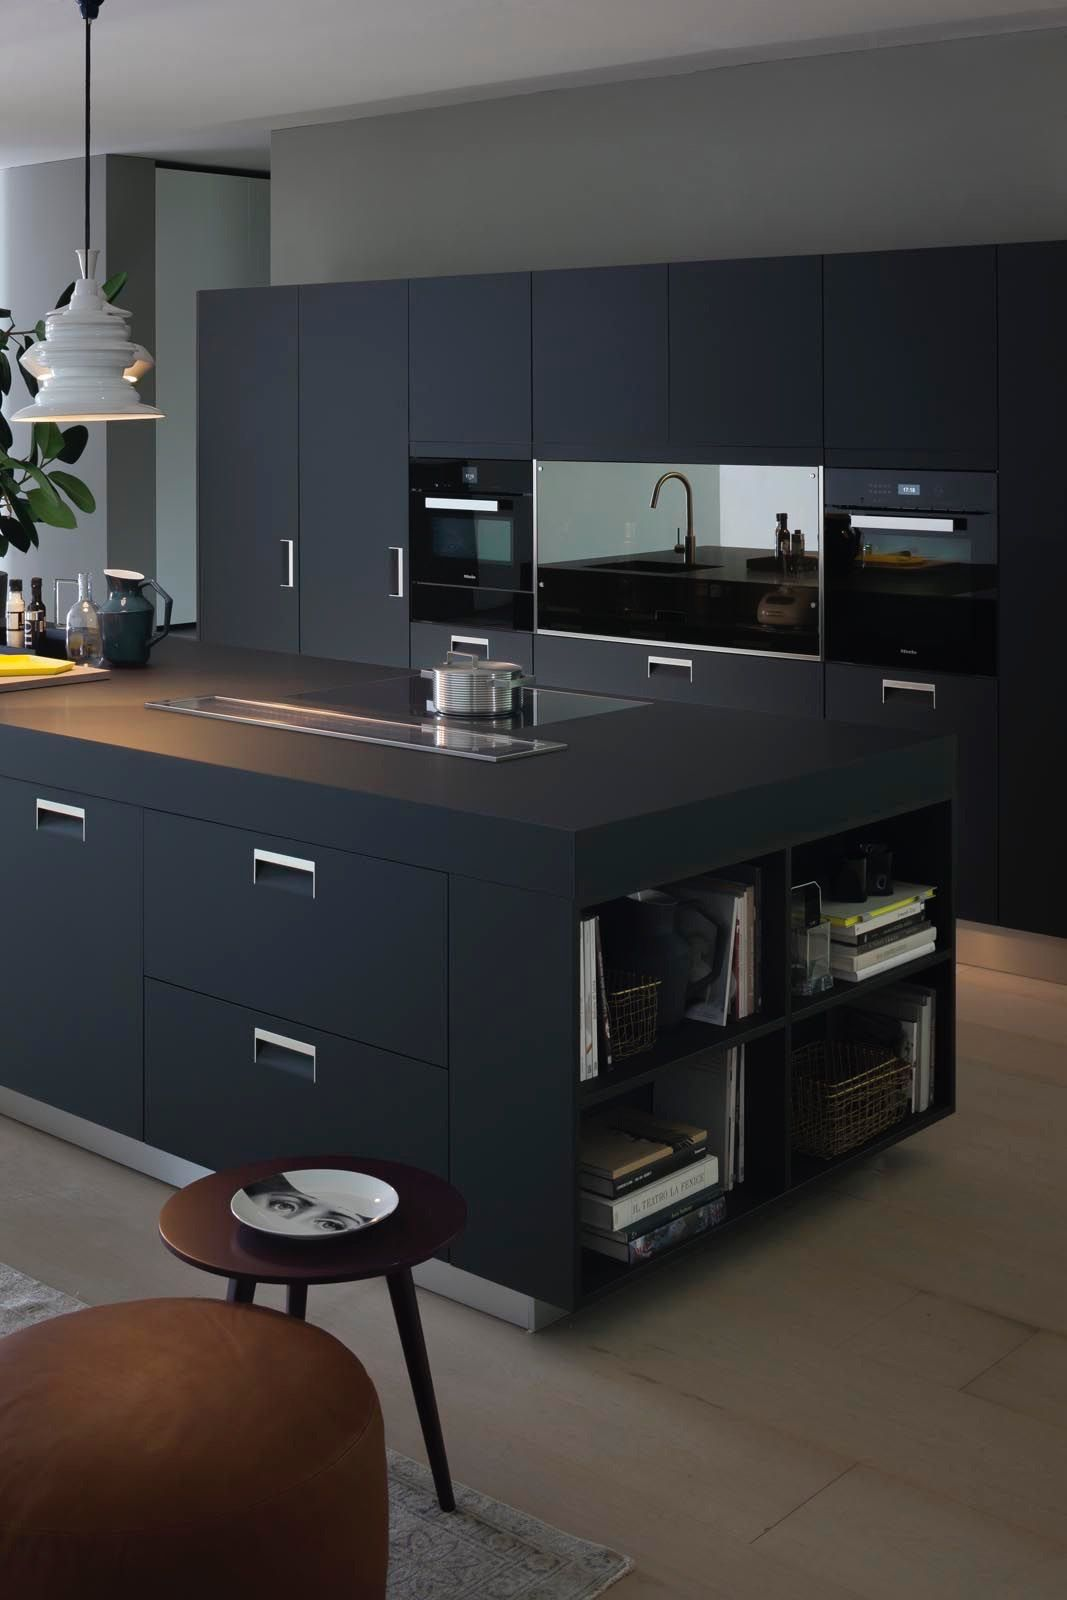 Pin By Rabih Chakra On Interiors Kitchens Pinterest Kitchen